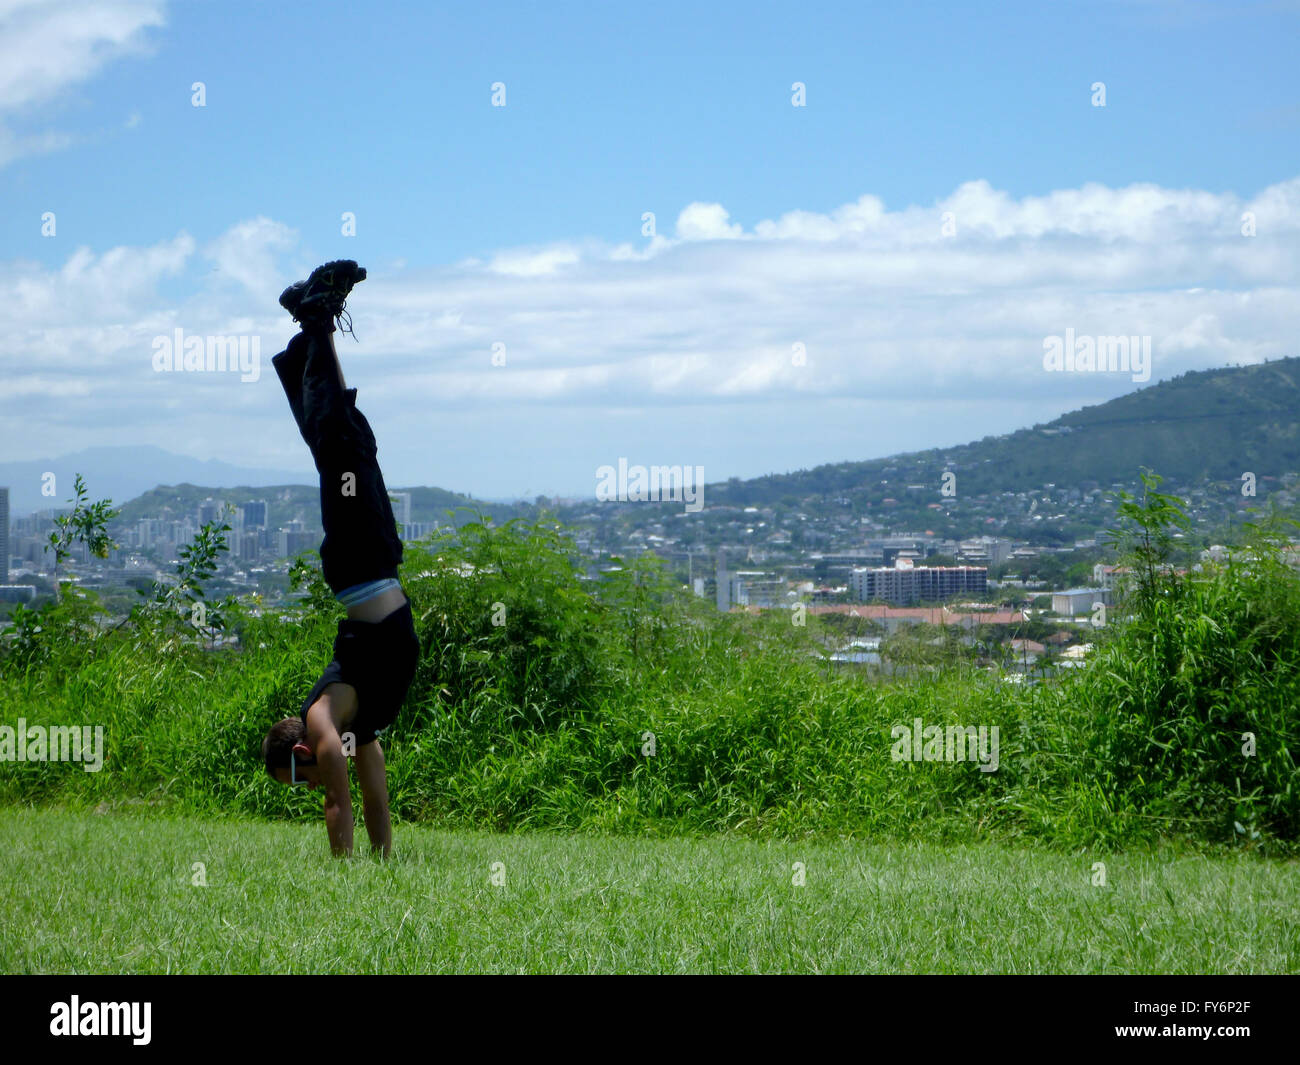 Man wearing sunglass, sleeveless shirt, long pants, and shoes does handstand in grass field with city of Honolulu - Stock Image